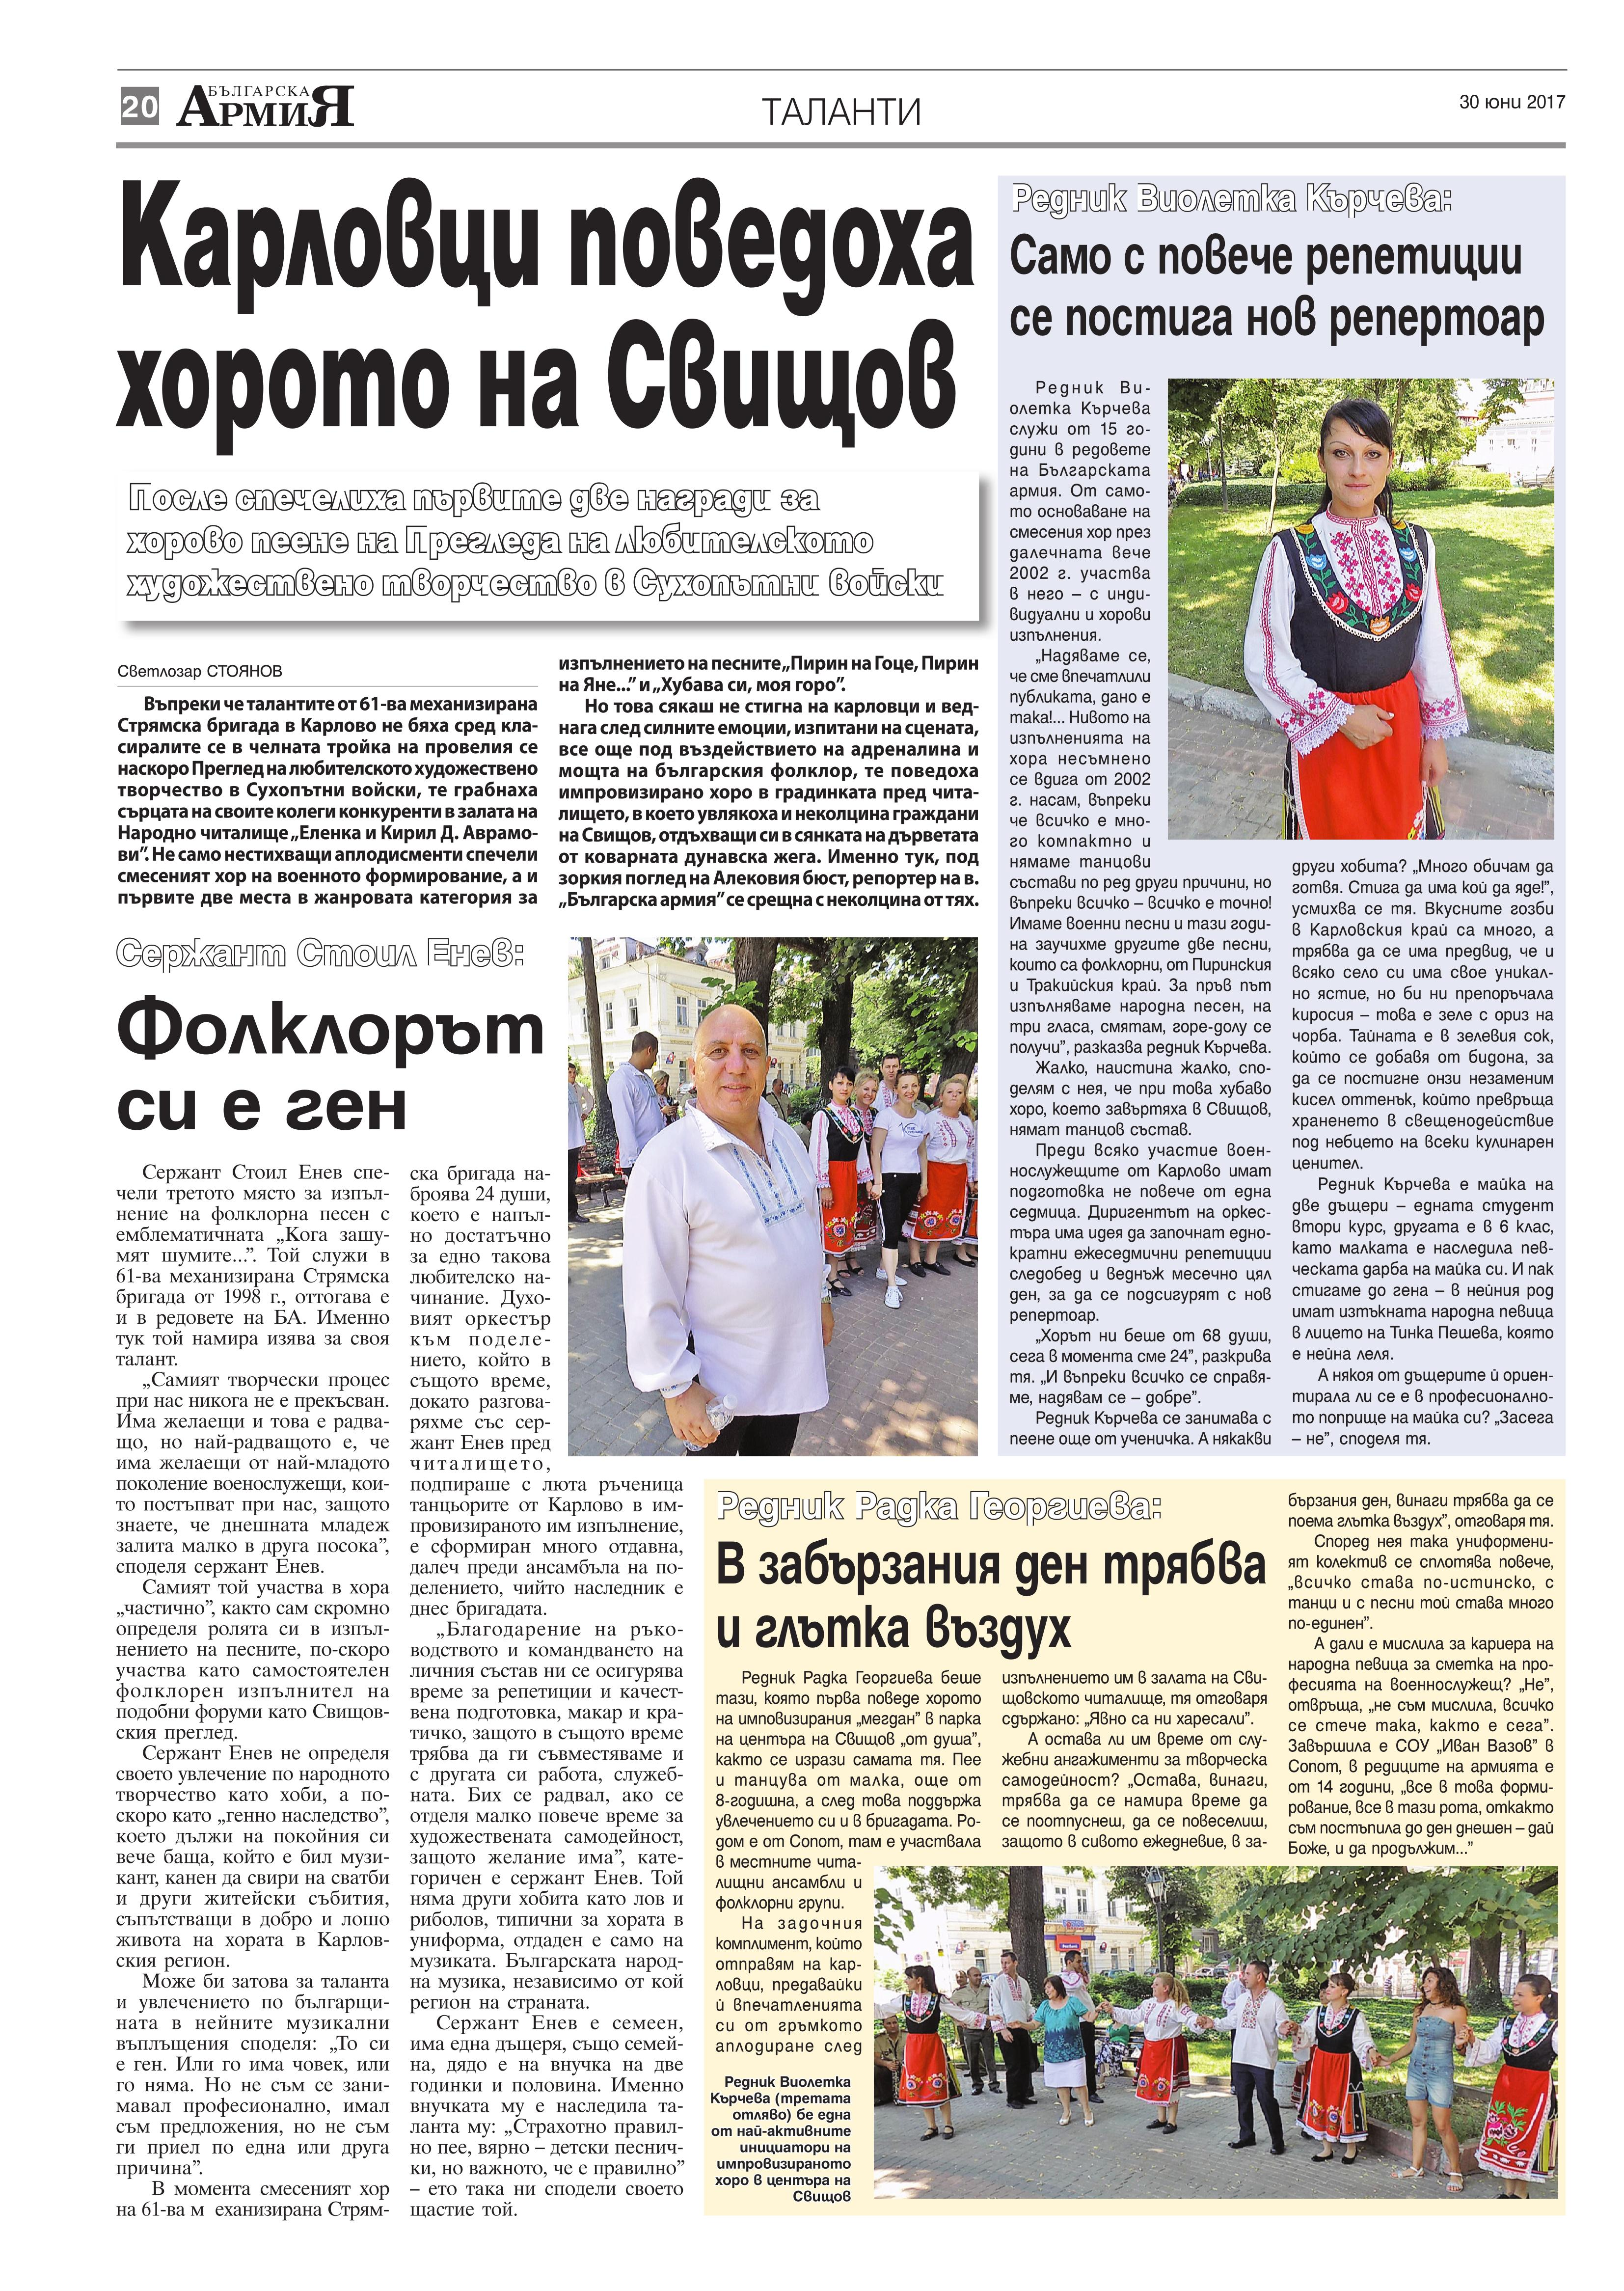 https://www.armymedia.bg/wp-content/uploads/2015/06/20.page1_-23.jpg